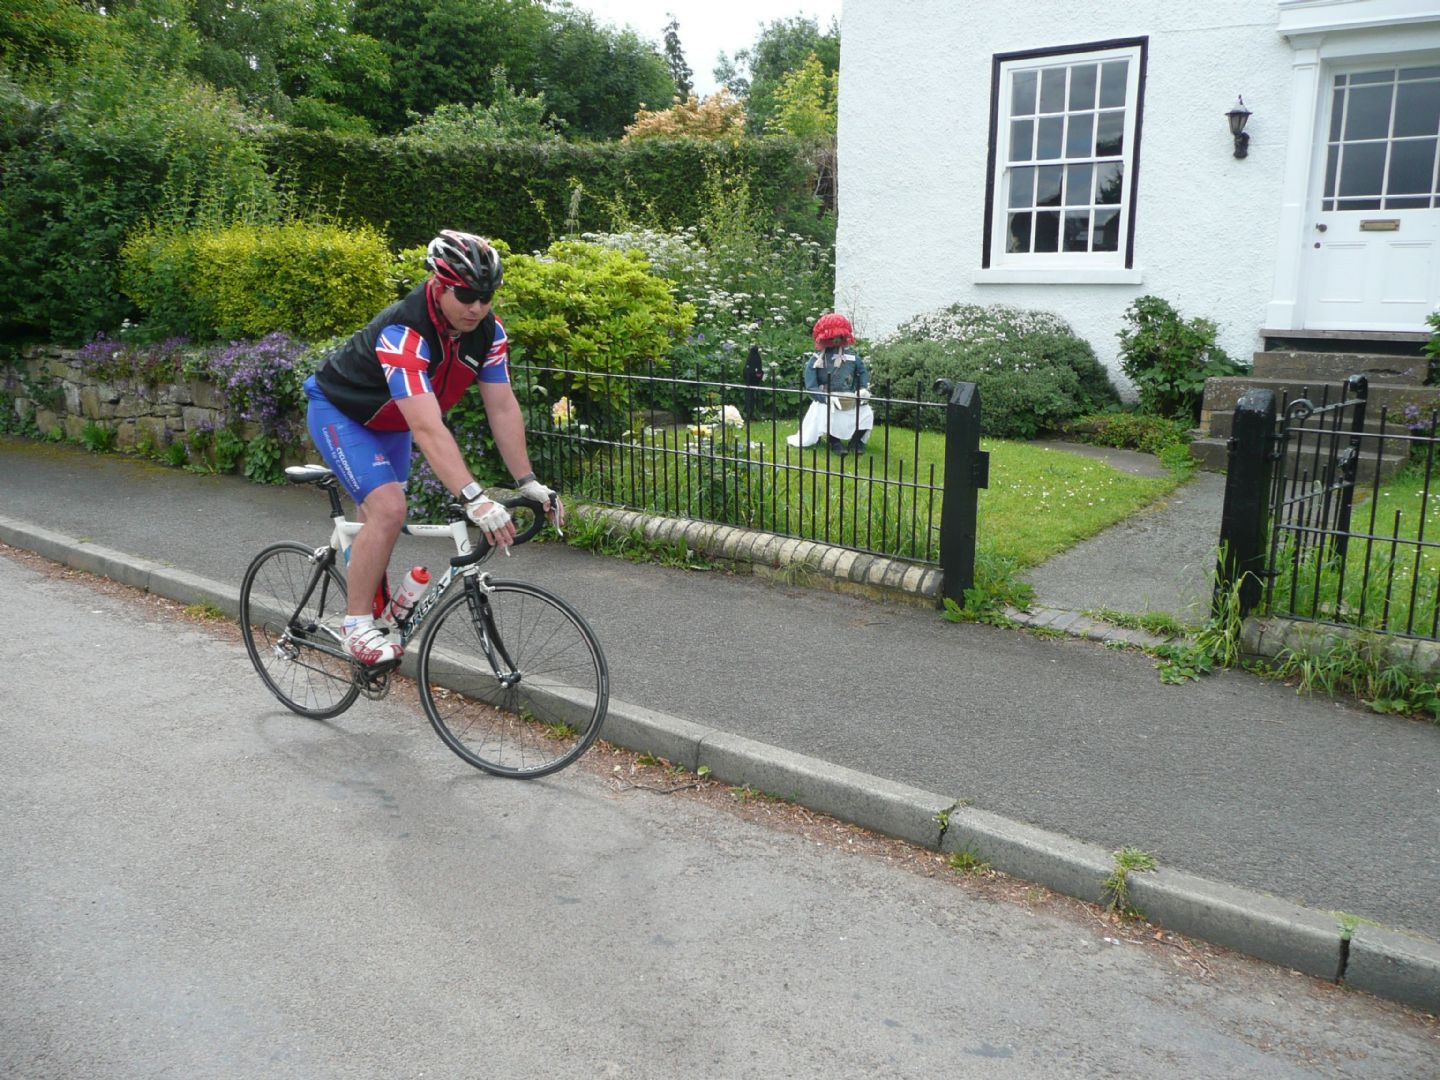 Chilterns Road Cycling Weekend 12.jpg - UK - Chilterns - Guided Road Cycling Weekend - Road Cycling